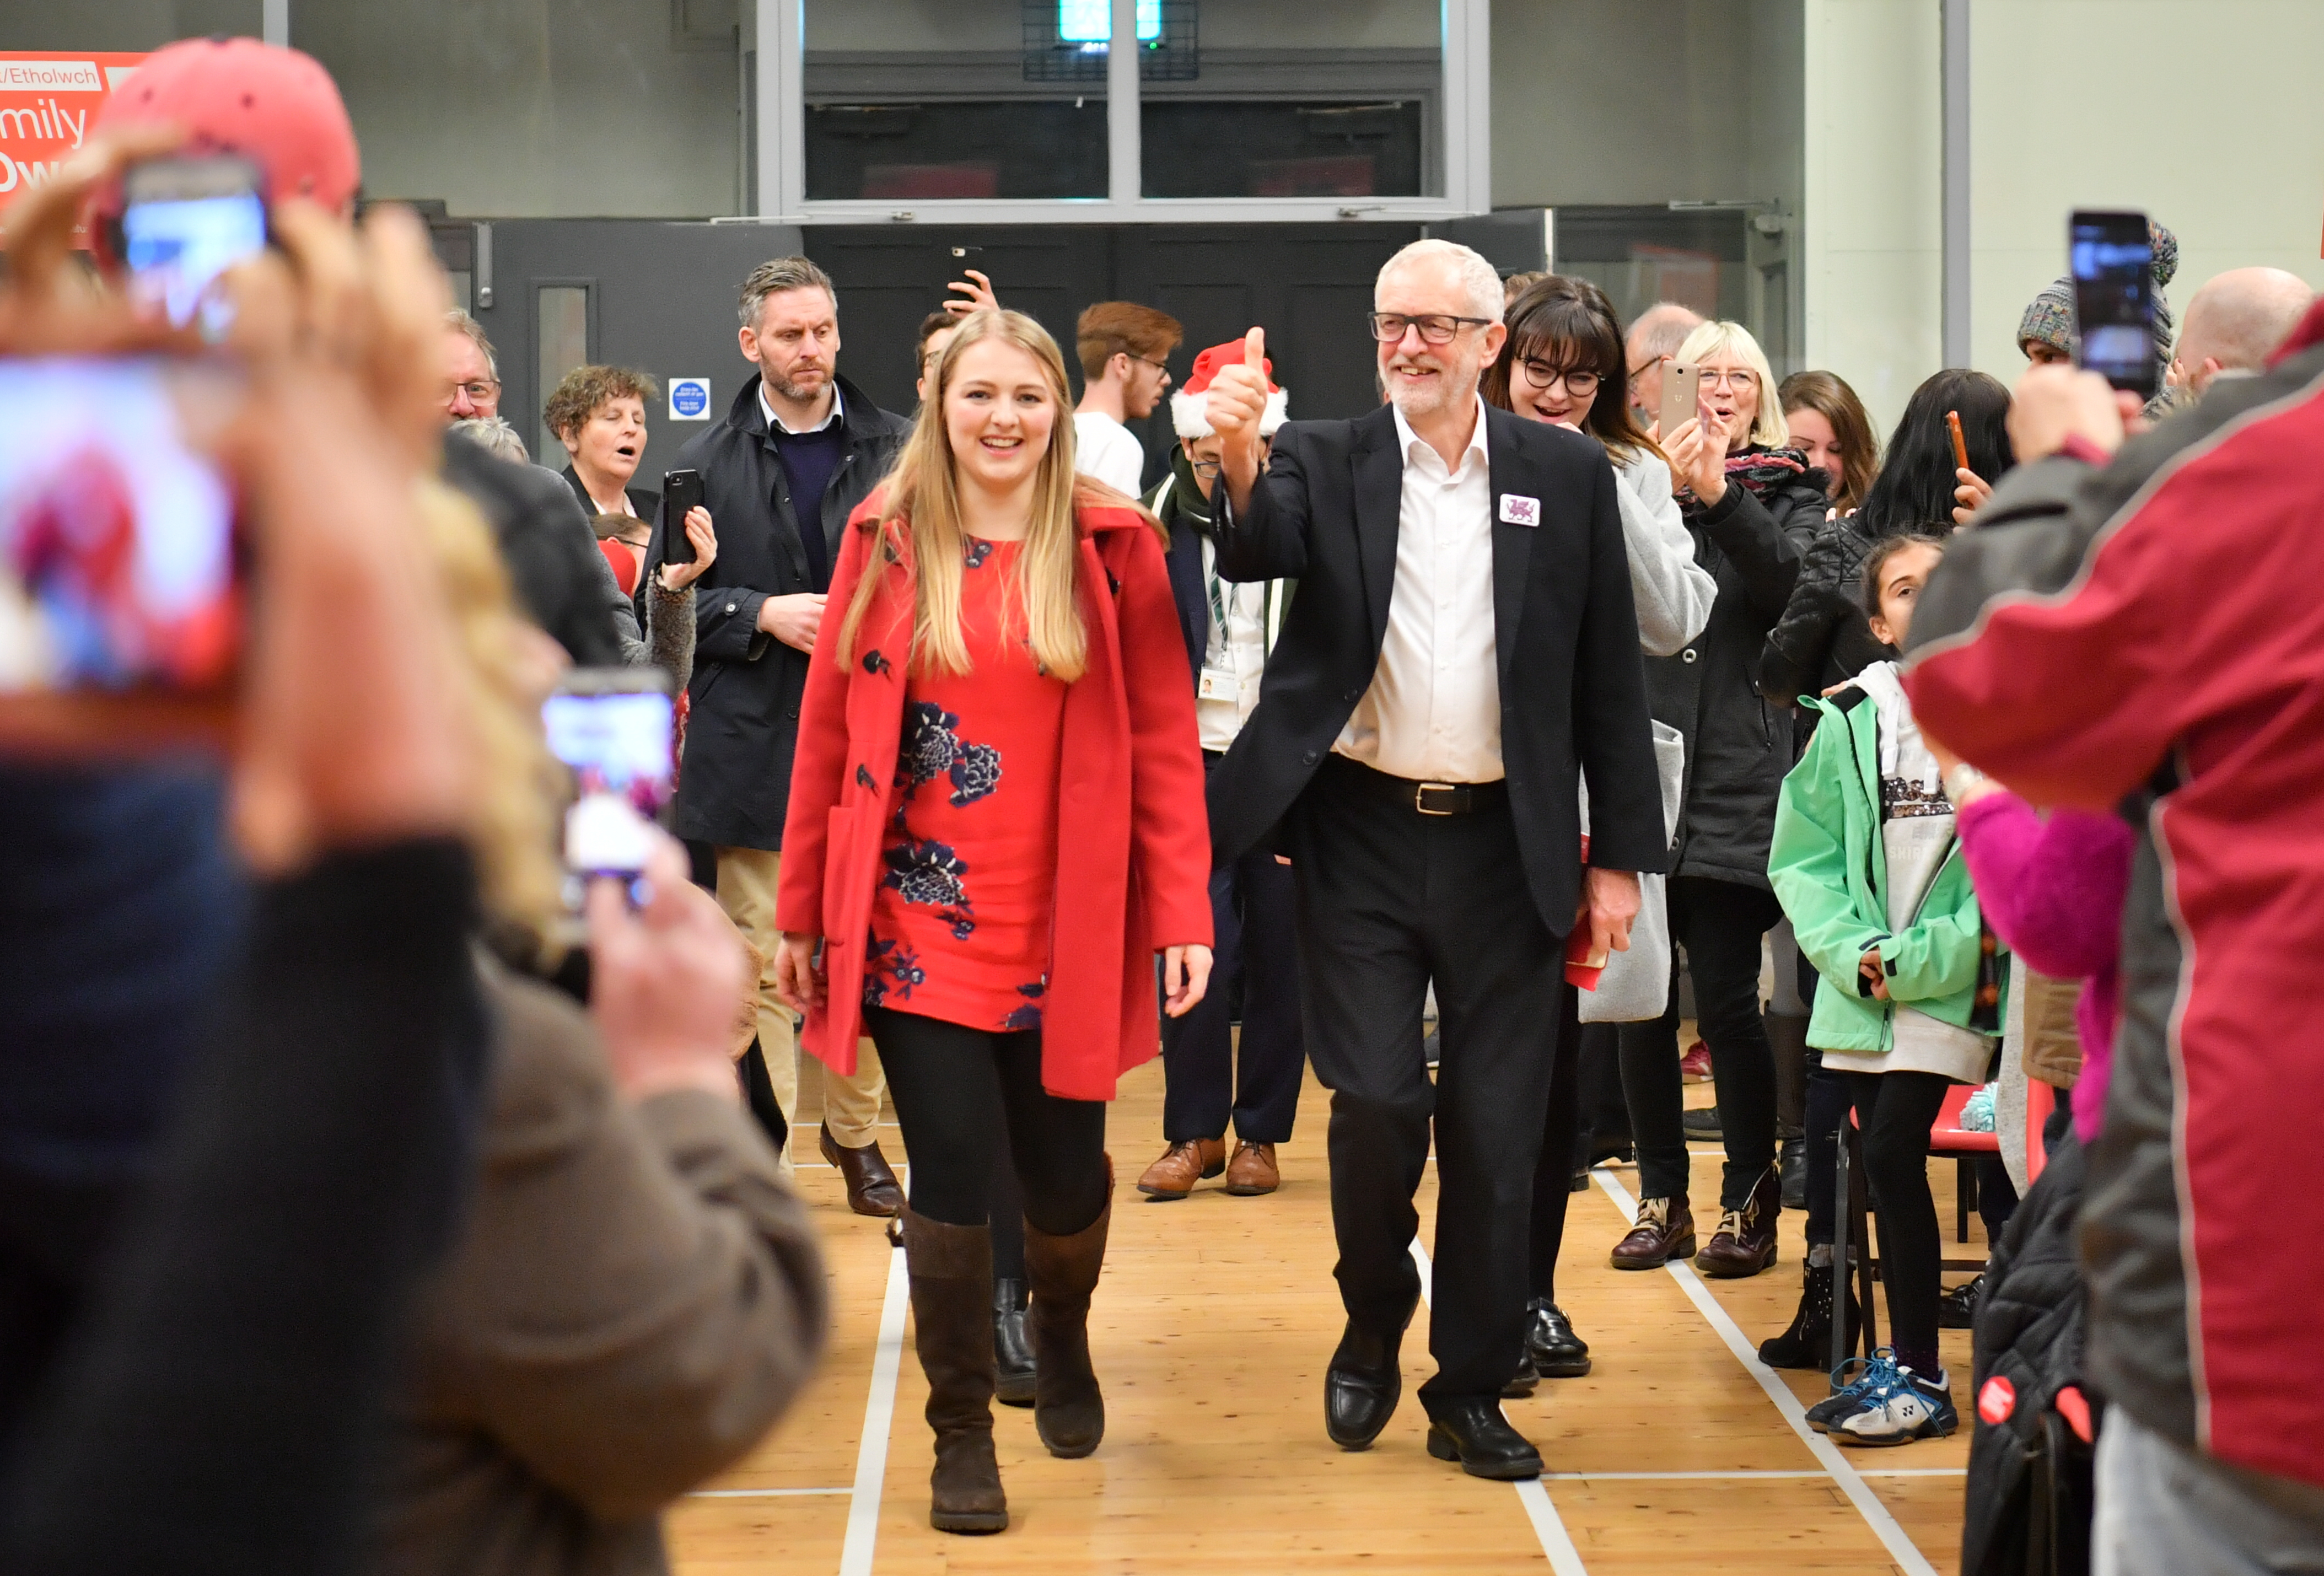 Labour Leader Jeremy Corbyn, with his party's Parliamentary candidate for Aberconwy Emily Owen, meeting supporters during a visit to Llanfairfechan Town Hall near Aberconwy, while on the General Election campaign trail in Wales.